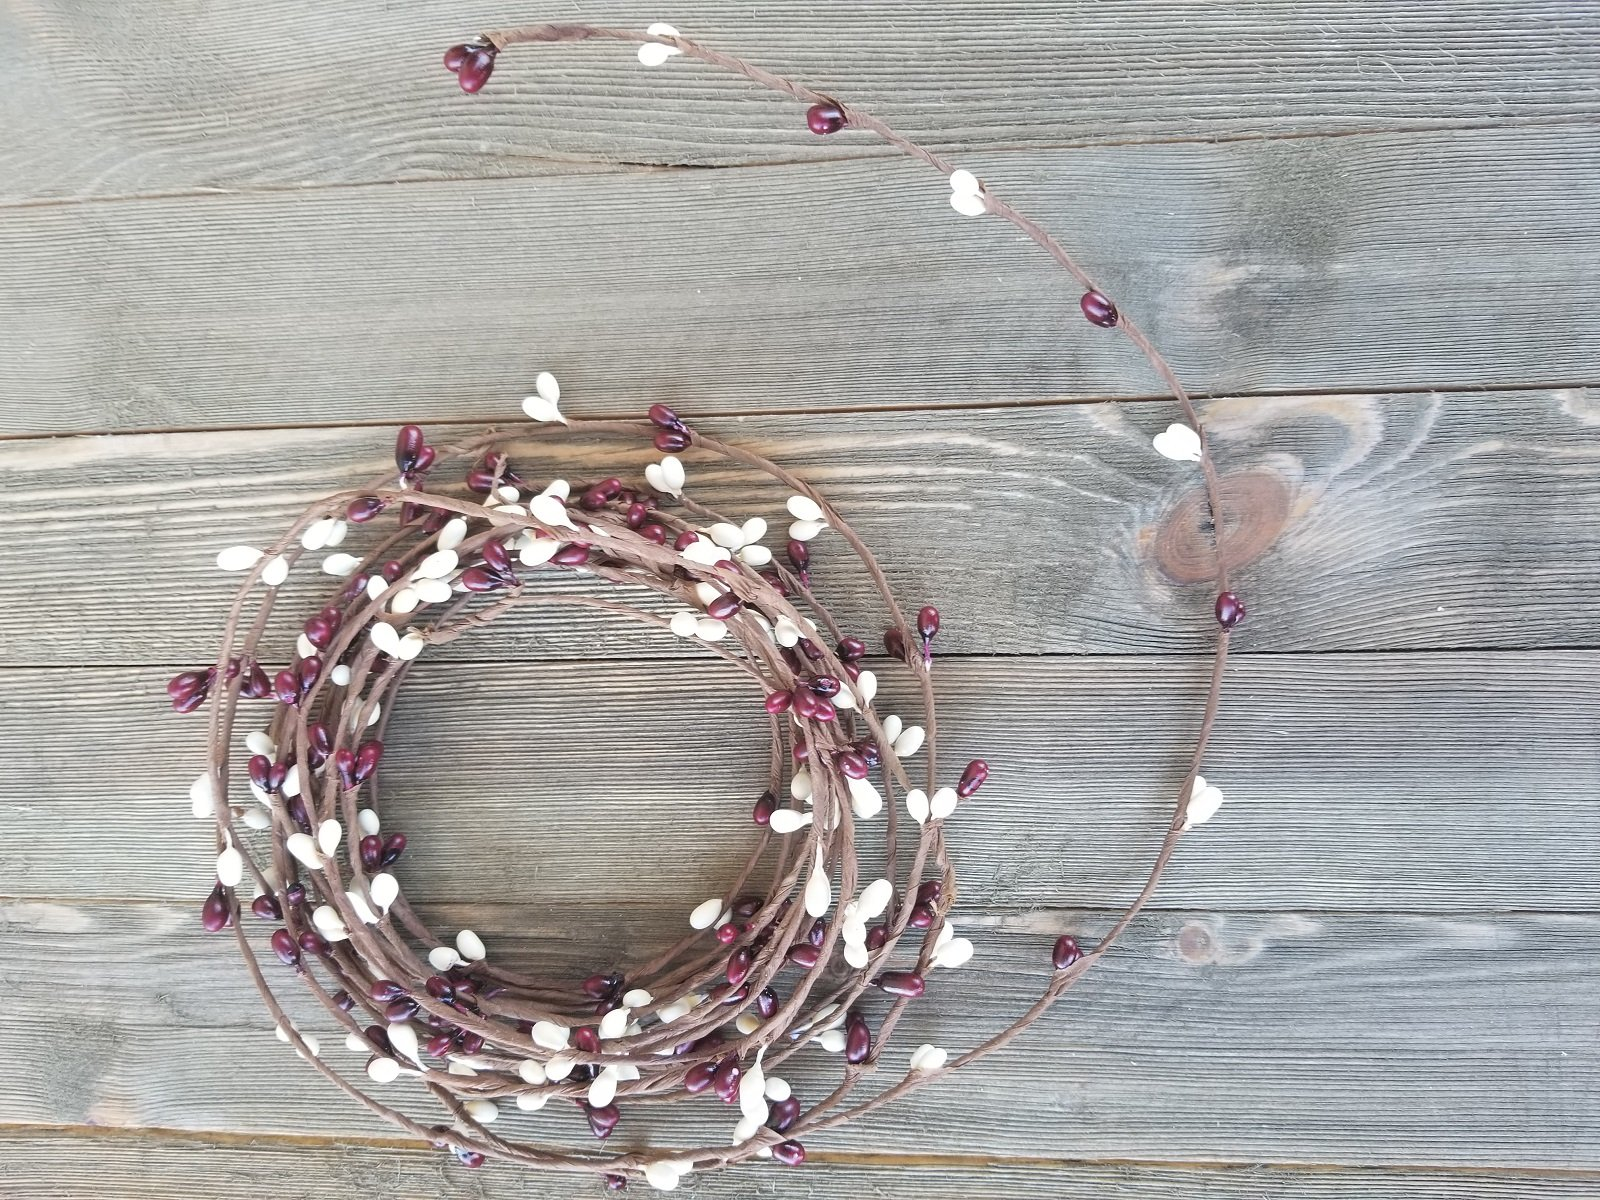 Burgundy & Cream Pip Berry Single Ply Garland 18' Country Primitive Floral Craft Decor - 3 Strands of 6' Garland that Can Be Utilized Separately or Twisted together to Equal 18 Feet Of String Garland